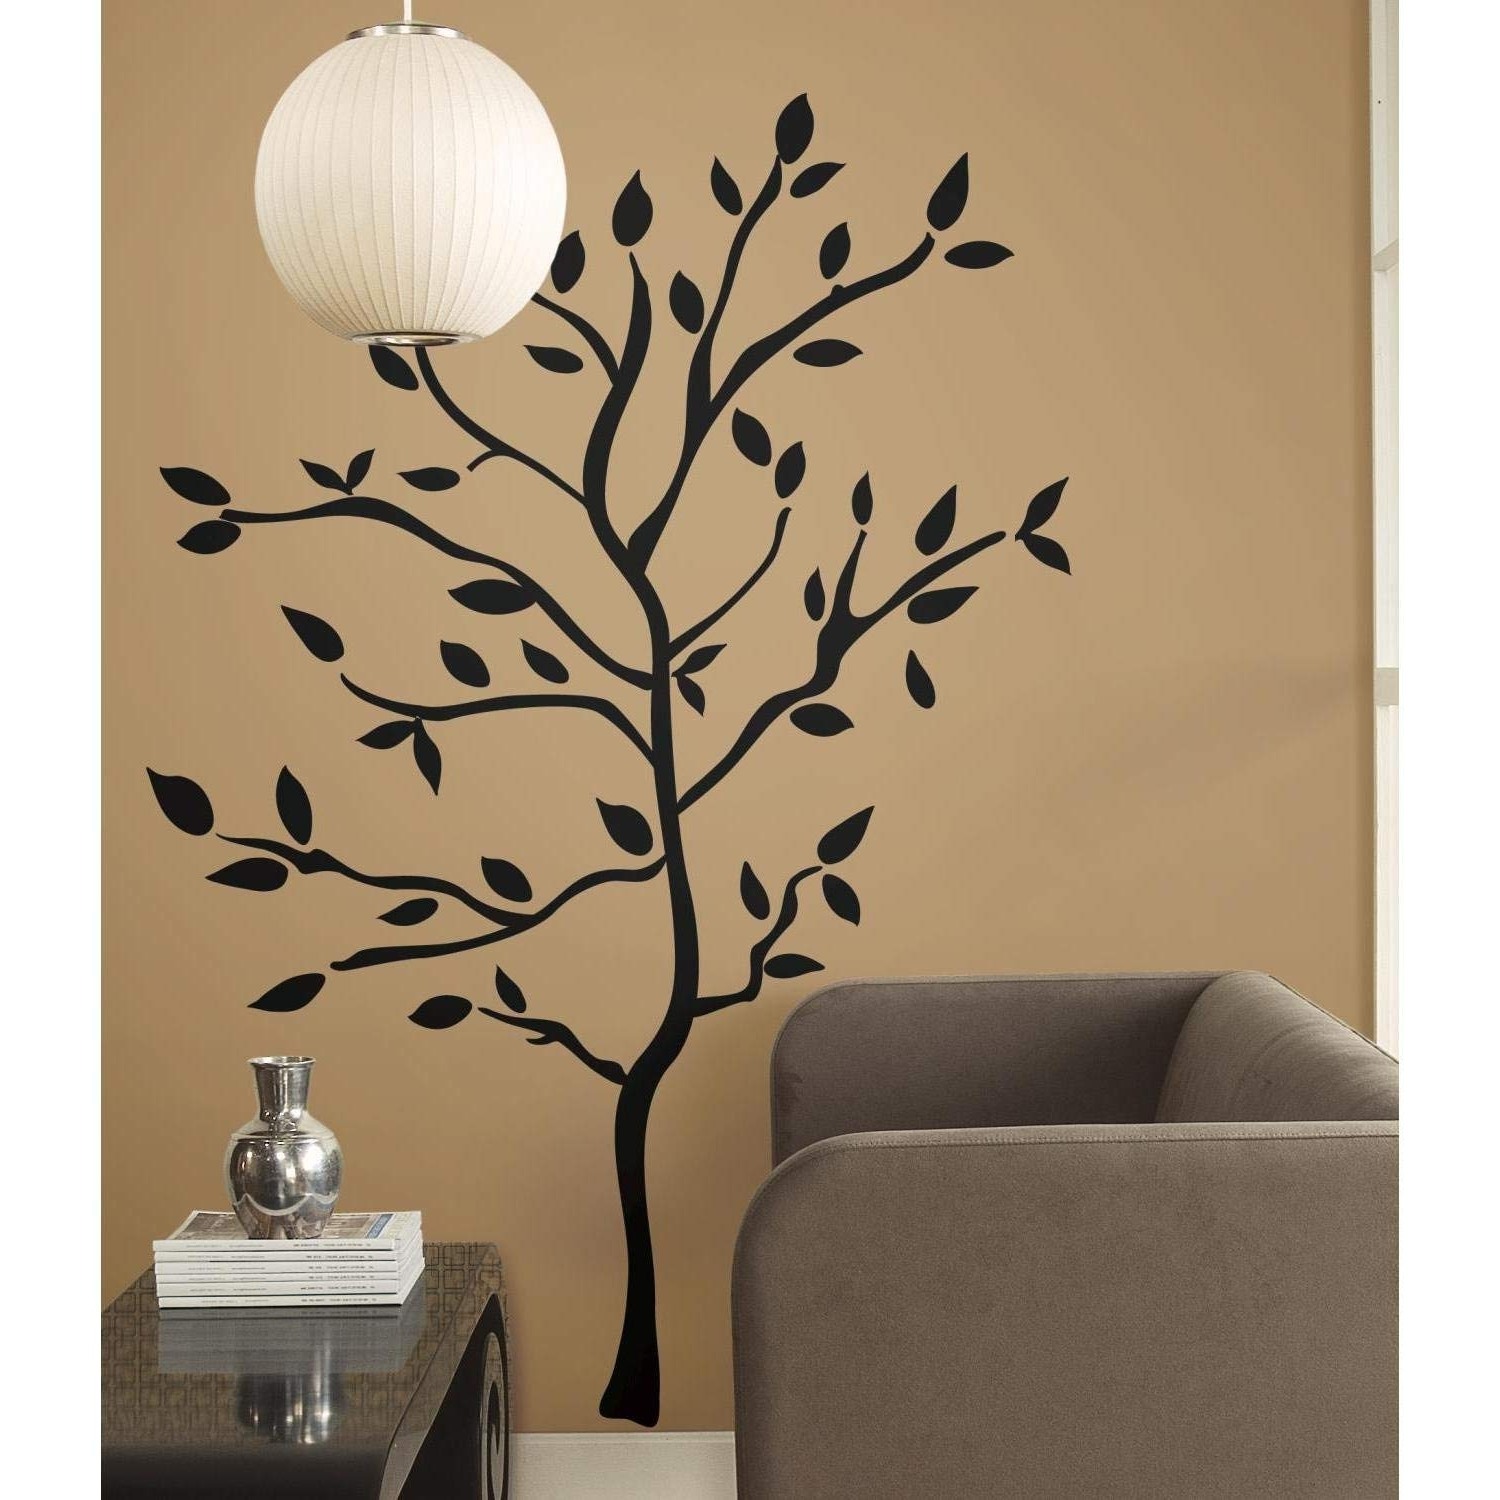 Stick On Wall Art Within Current Roommates Rmk1317Gm Tree Branches Peel & Stick Wall Decals – Wall (View 7 of 15)